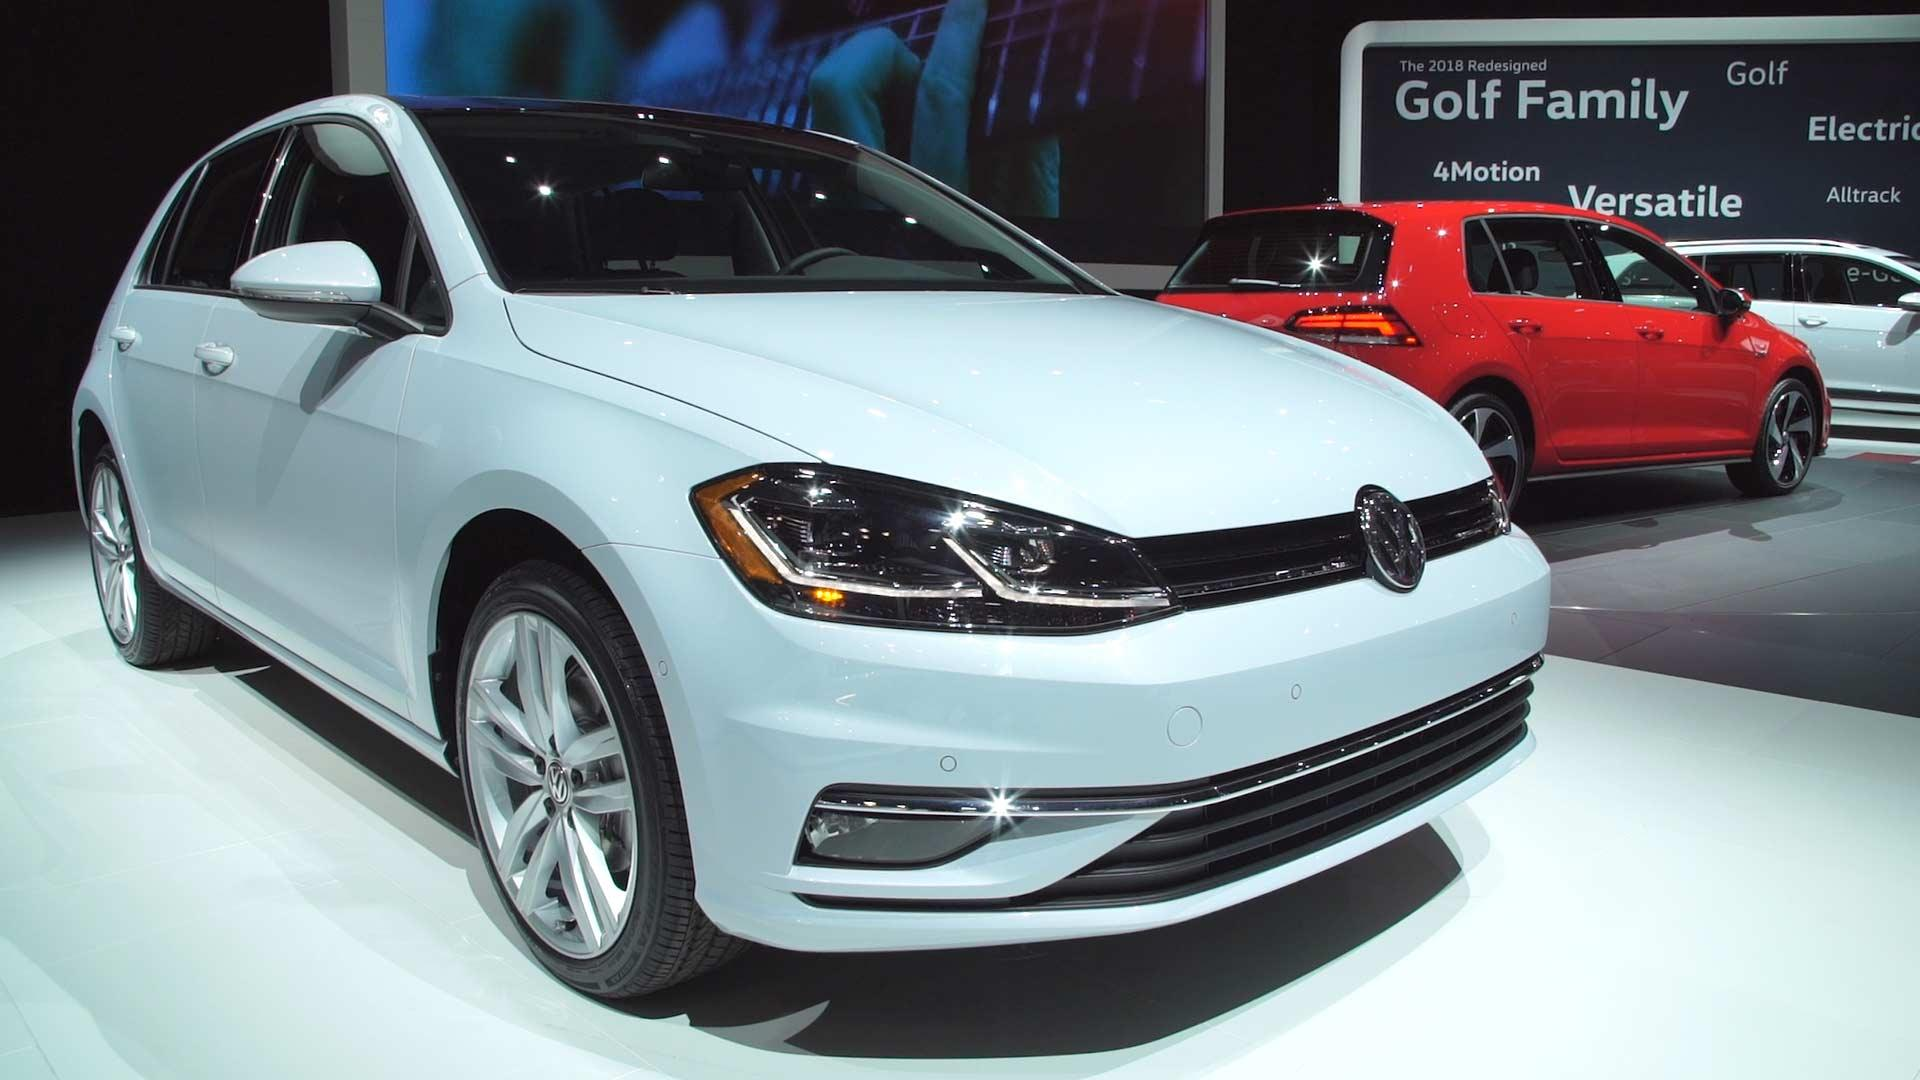 2018 Volkswagen Golf Preview Consumer Reports